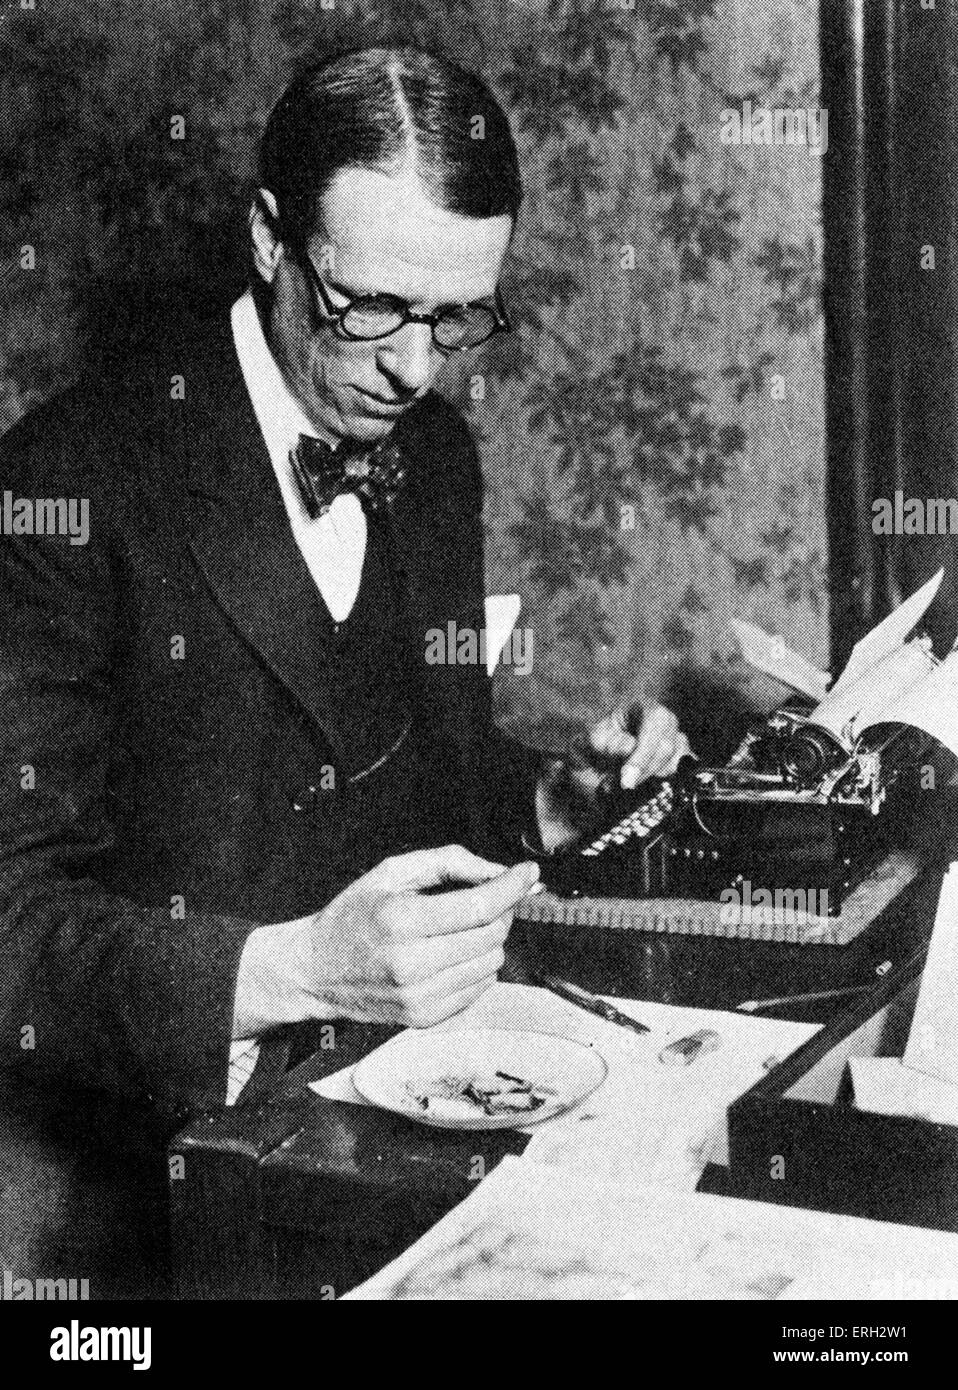 Sinclair Lewis, c. early 1930s, working on his novel 'It Can't Happen Here'. American novelist and playwright, - Stock Image